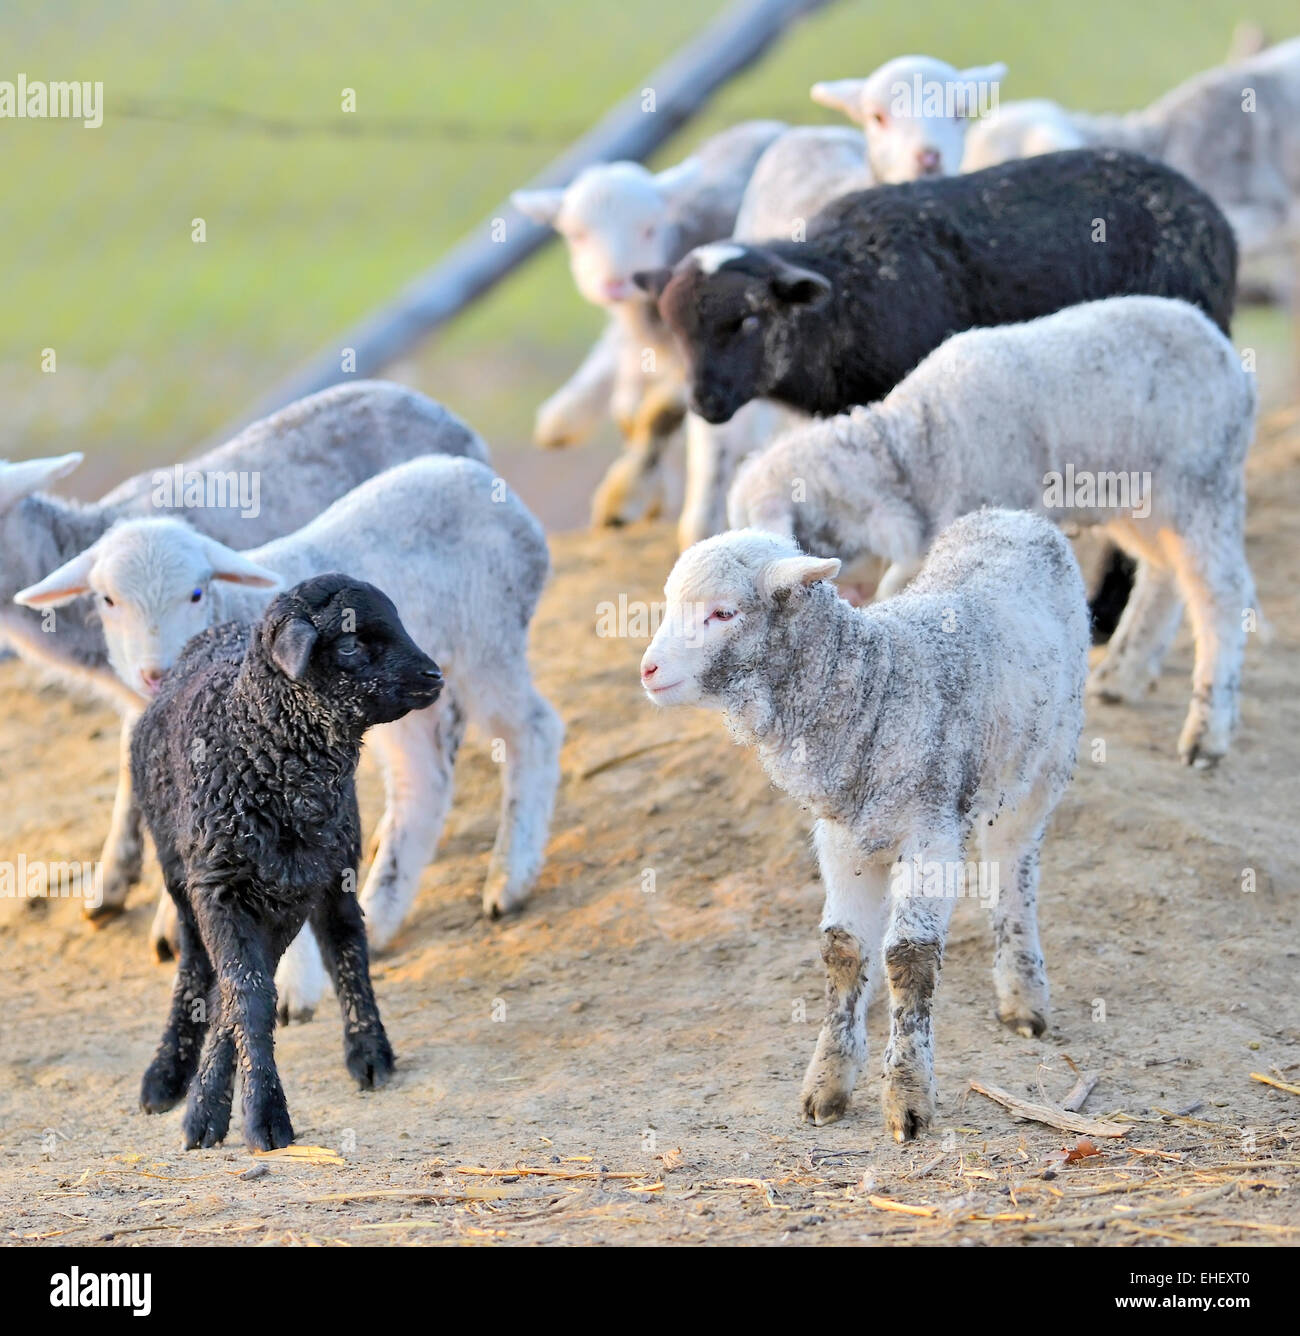 Young lambs in sping time - Stock Image